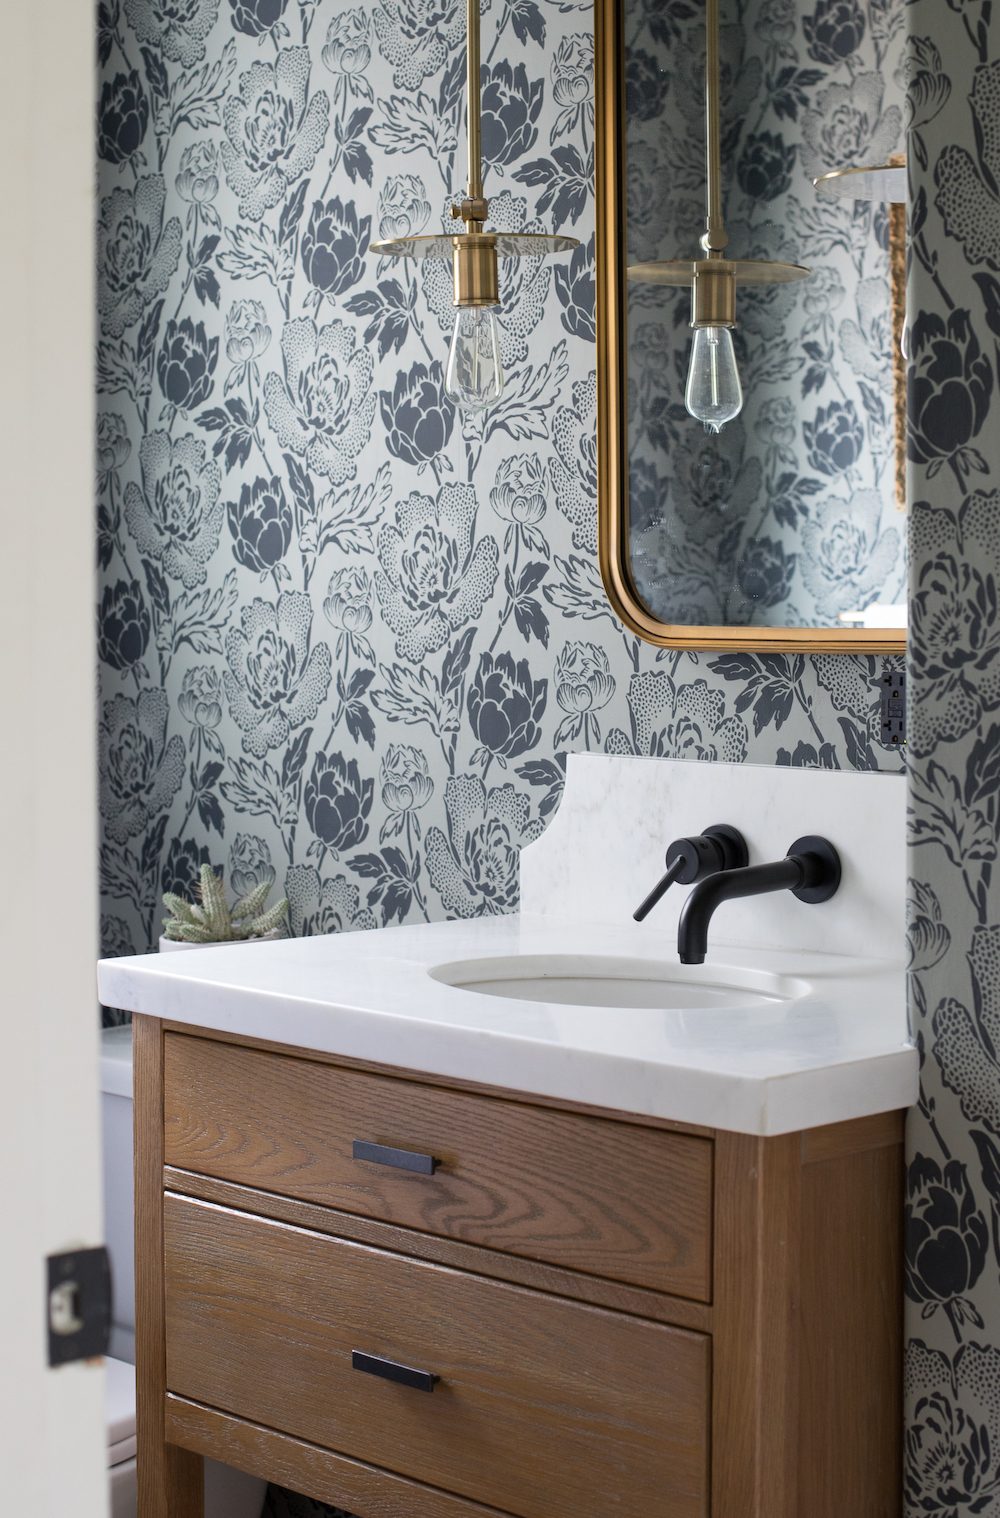 Floral wallpaper in bathroom - Britt Interiors || 15 small cloakrooms / powder rooms that are big on style - FIRST SENSE